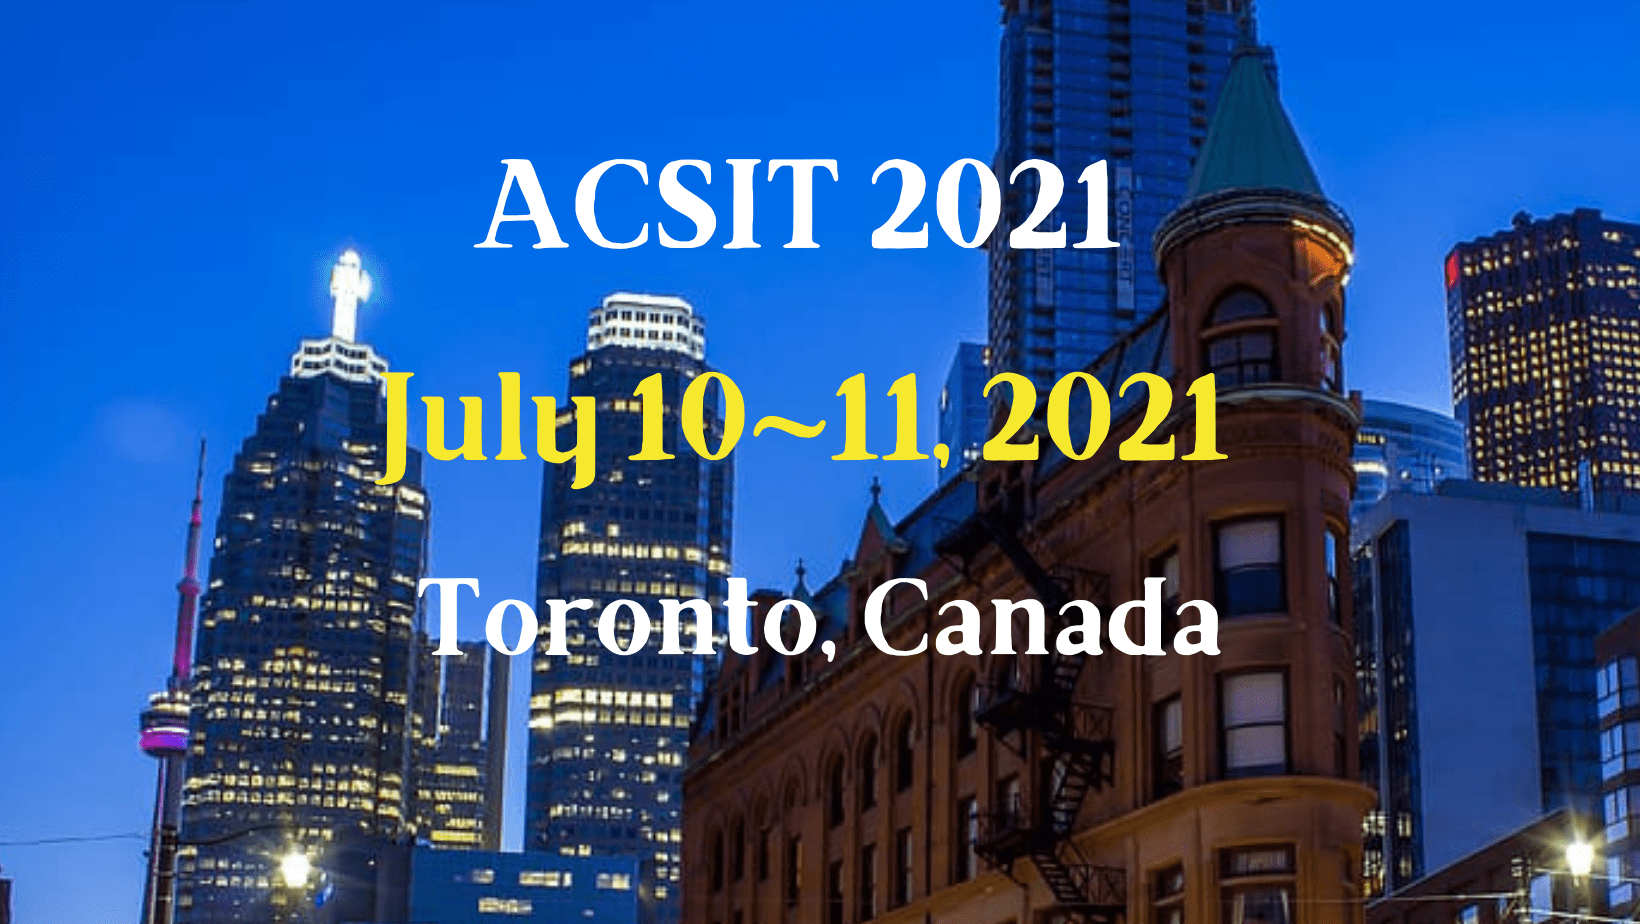 9th International Conference of Advanced Computer Science & Information Technology (ACSIT 2021)